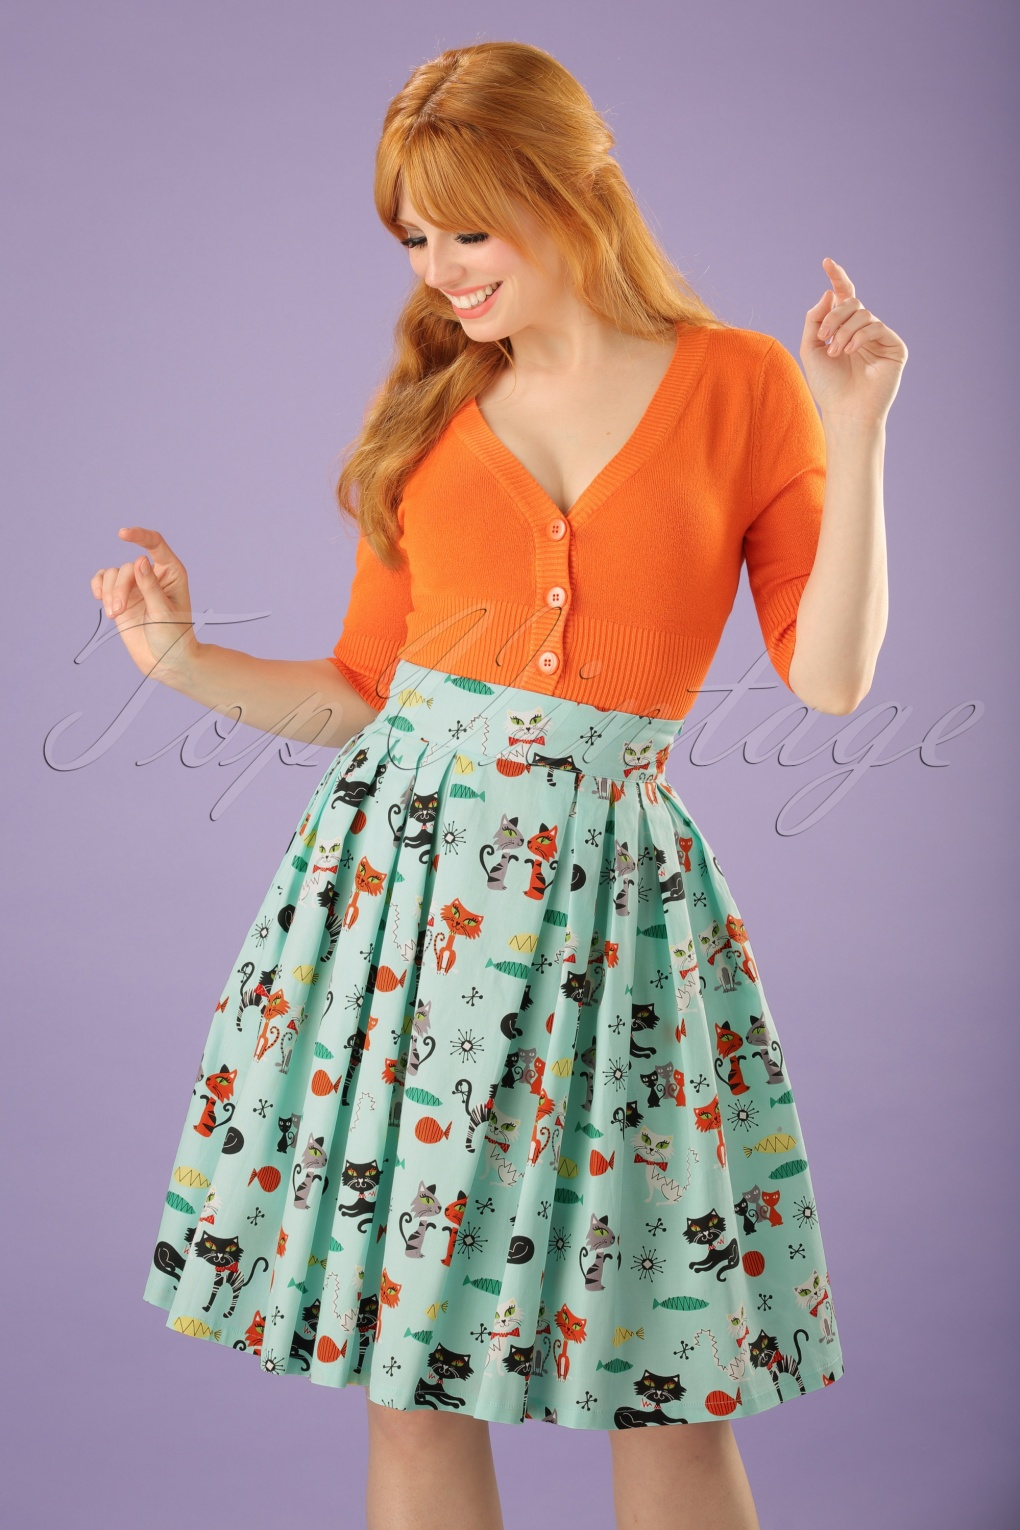 1950s Skirt Styles & History 50s Veronika Cats Swing Skirt in Mint £18.04 AT vintagedancer.com